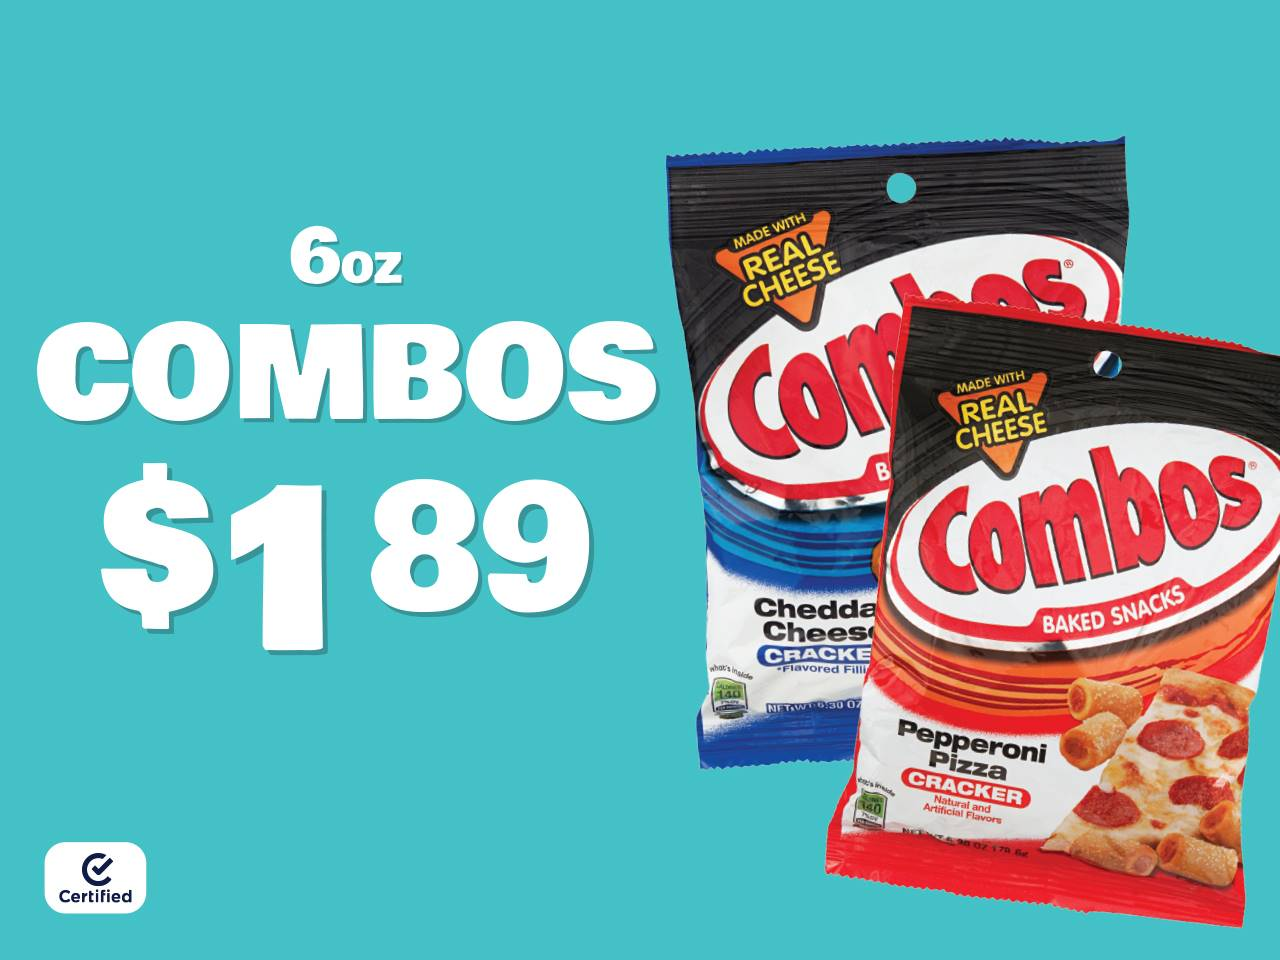 6oz Combos for $1.89